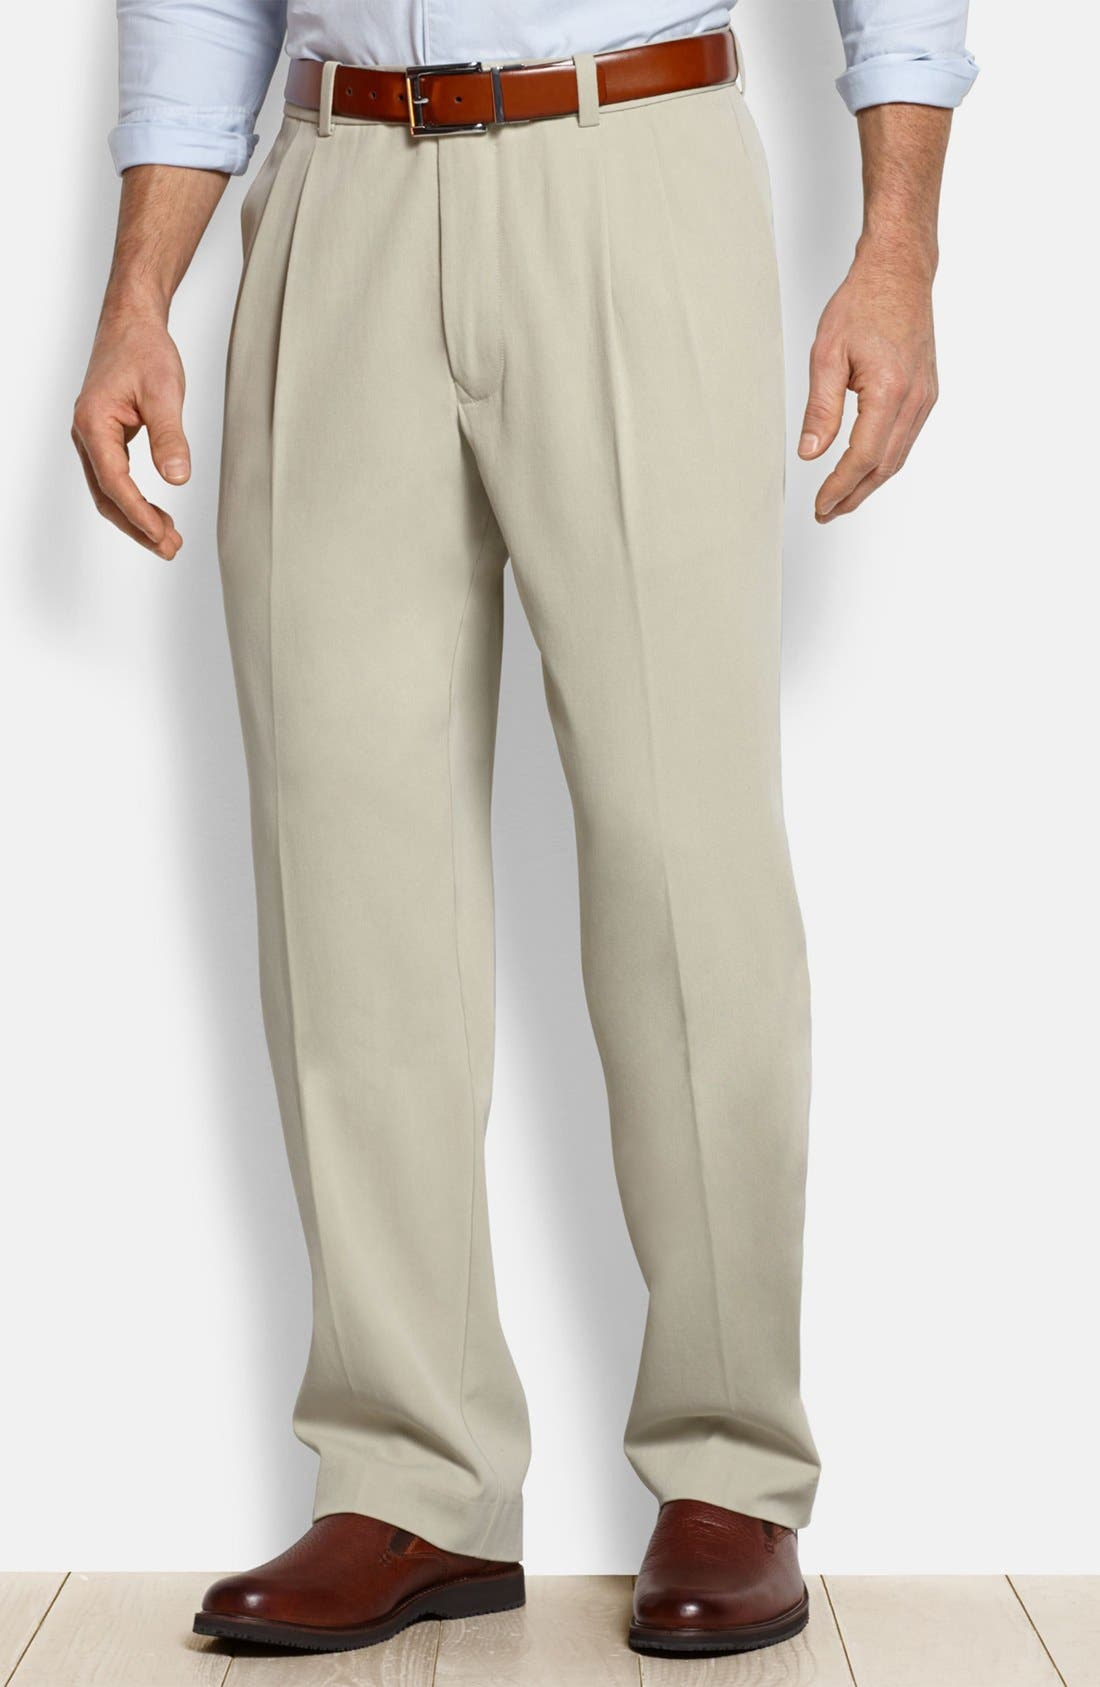 Alternate Image 1 Selected - Tommy Bahama 'New St. Thomas' Flat Front Silk & Cotton Pants (Big & Tall)